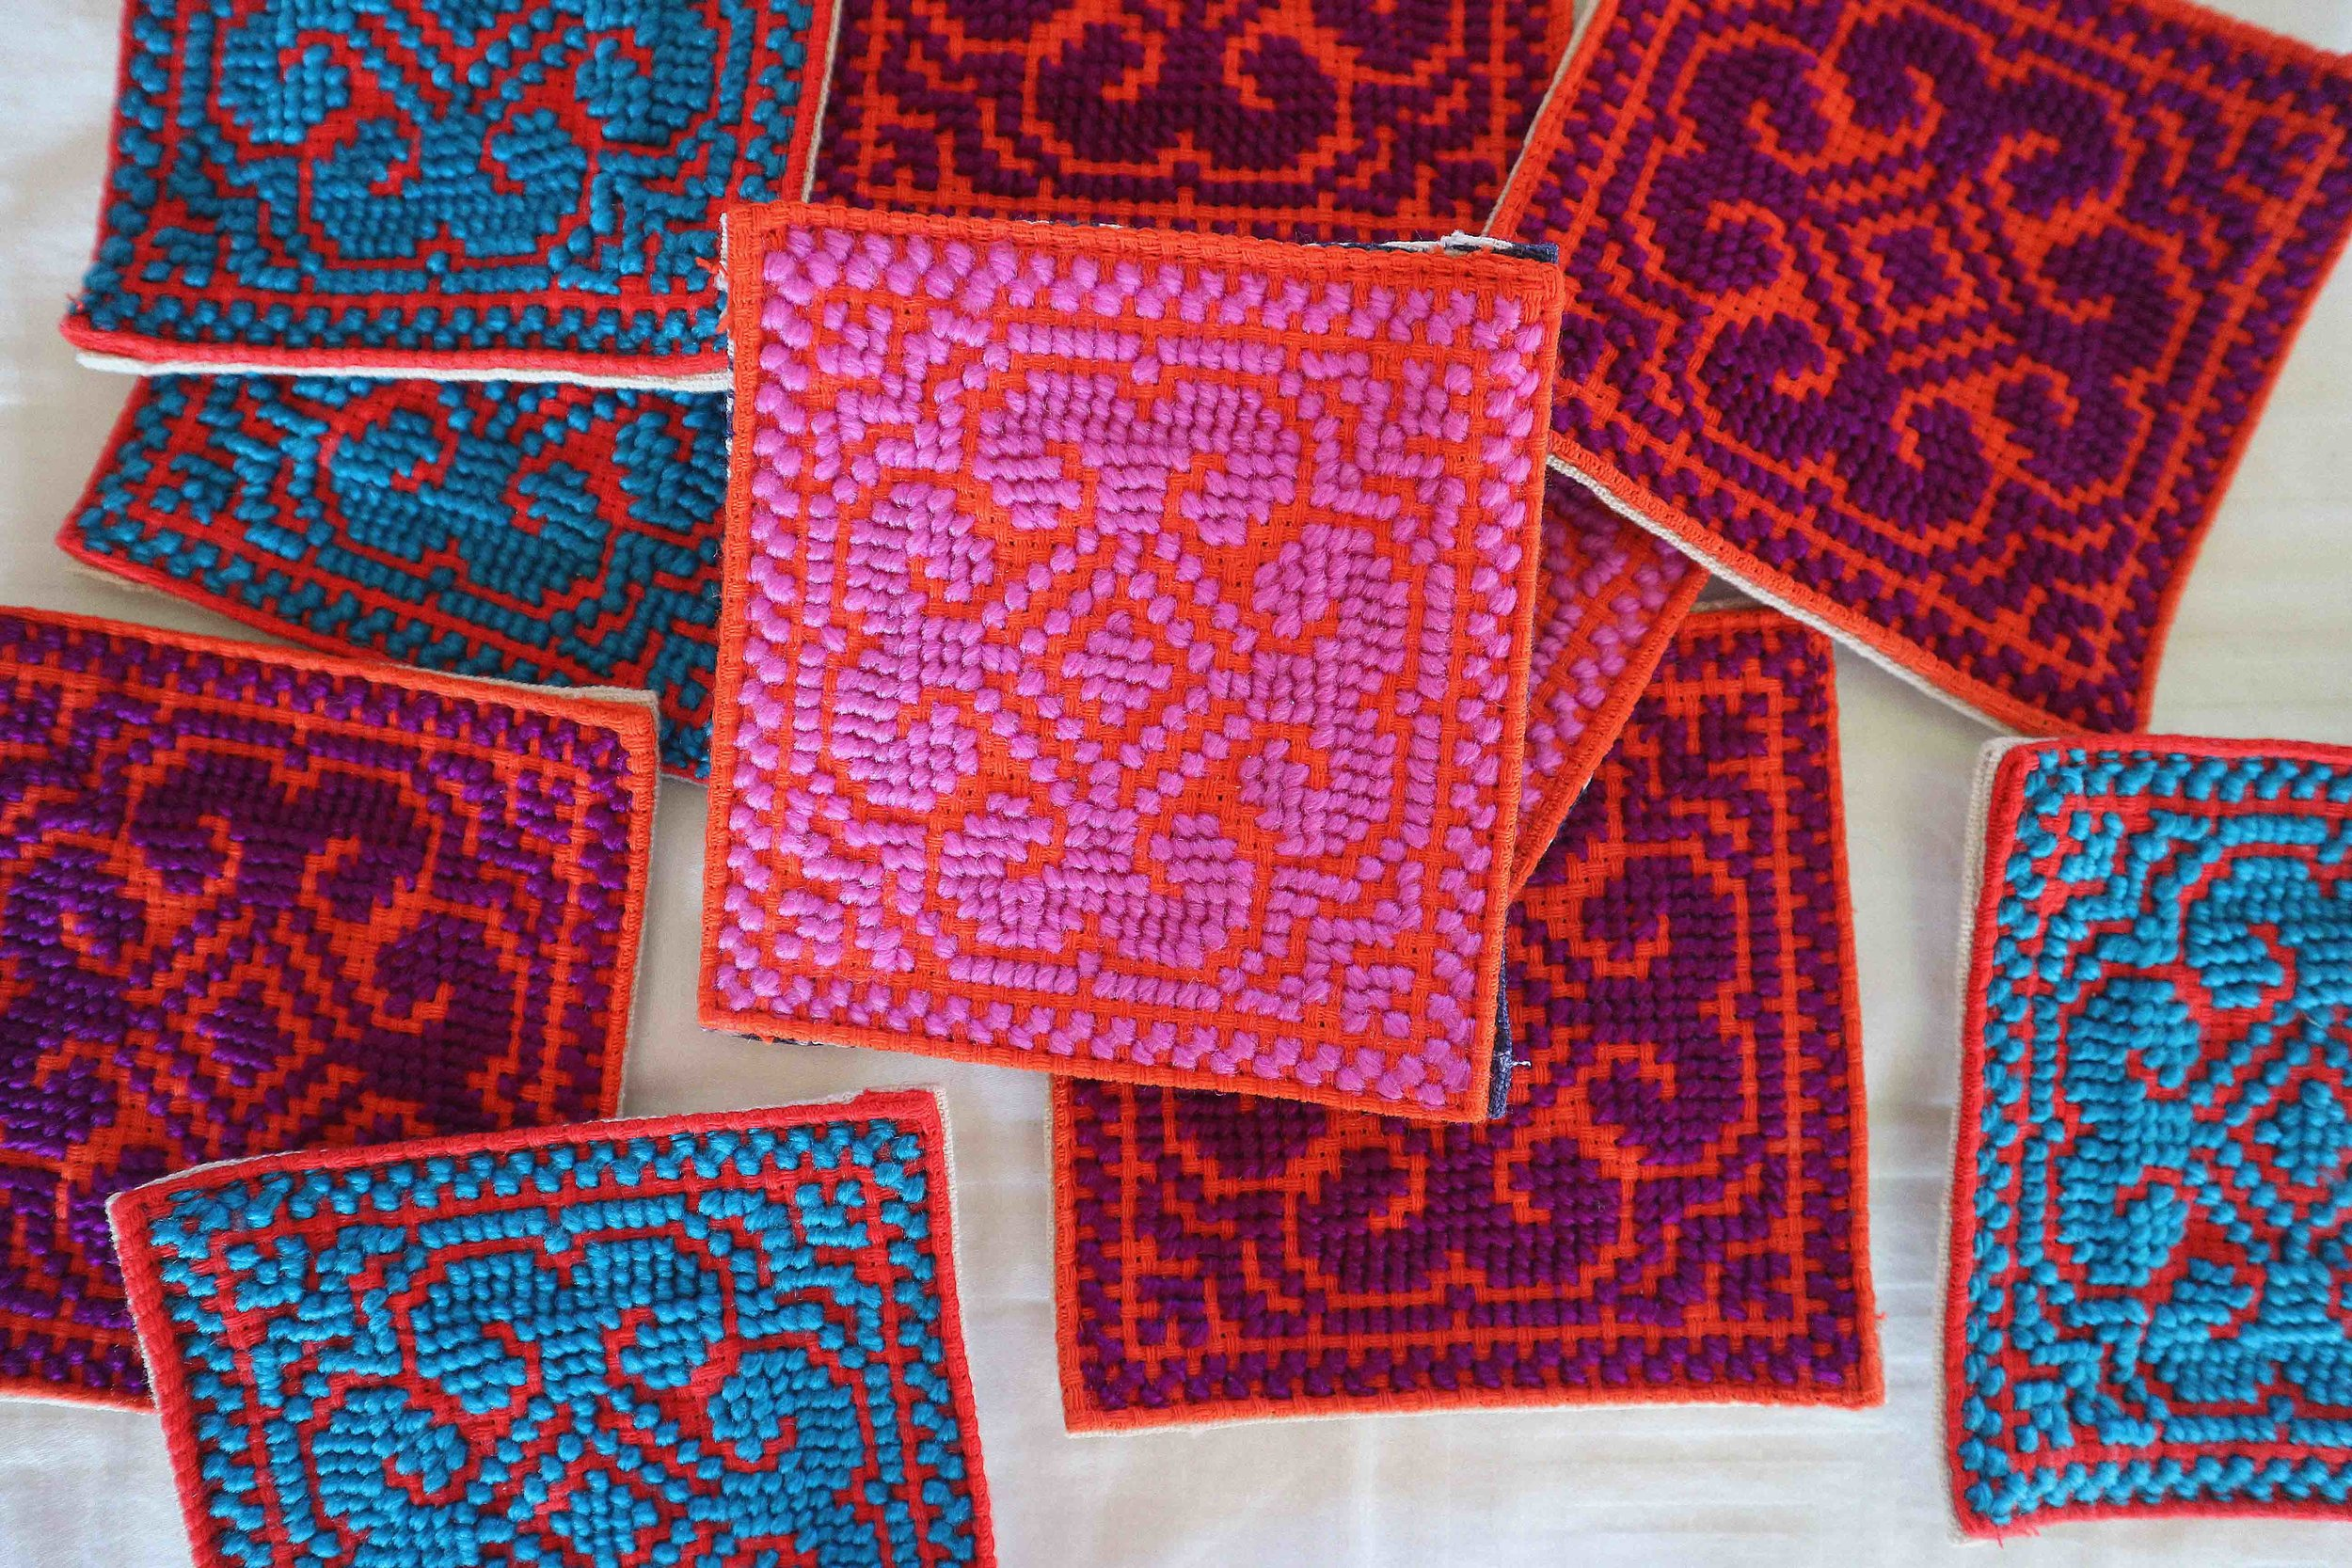 Newly produced hand cross-stitched coasters.  These are very quick to produce for the skilled locals. They were 75p each